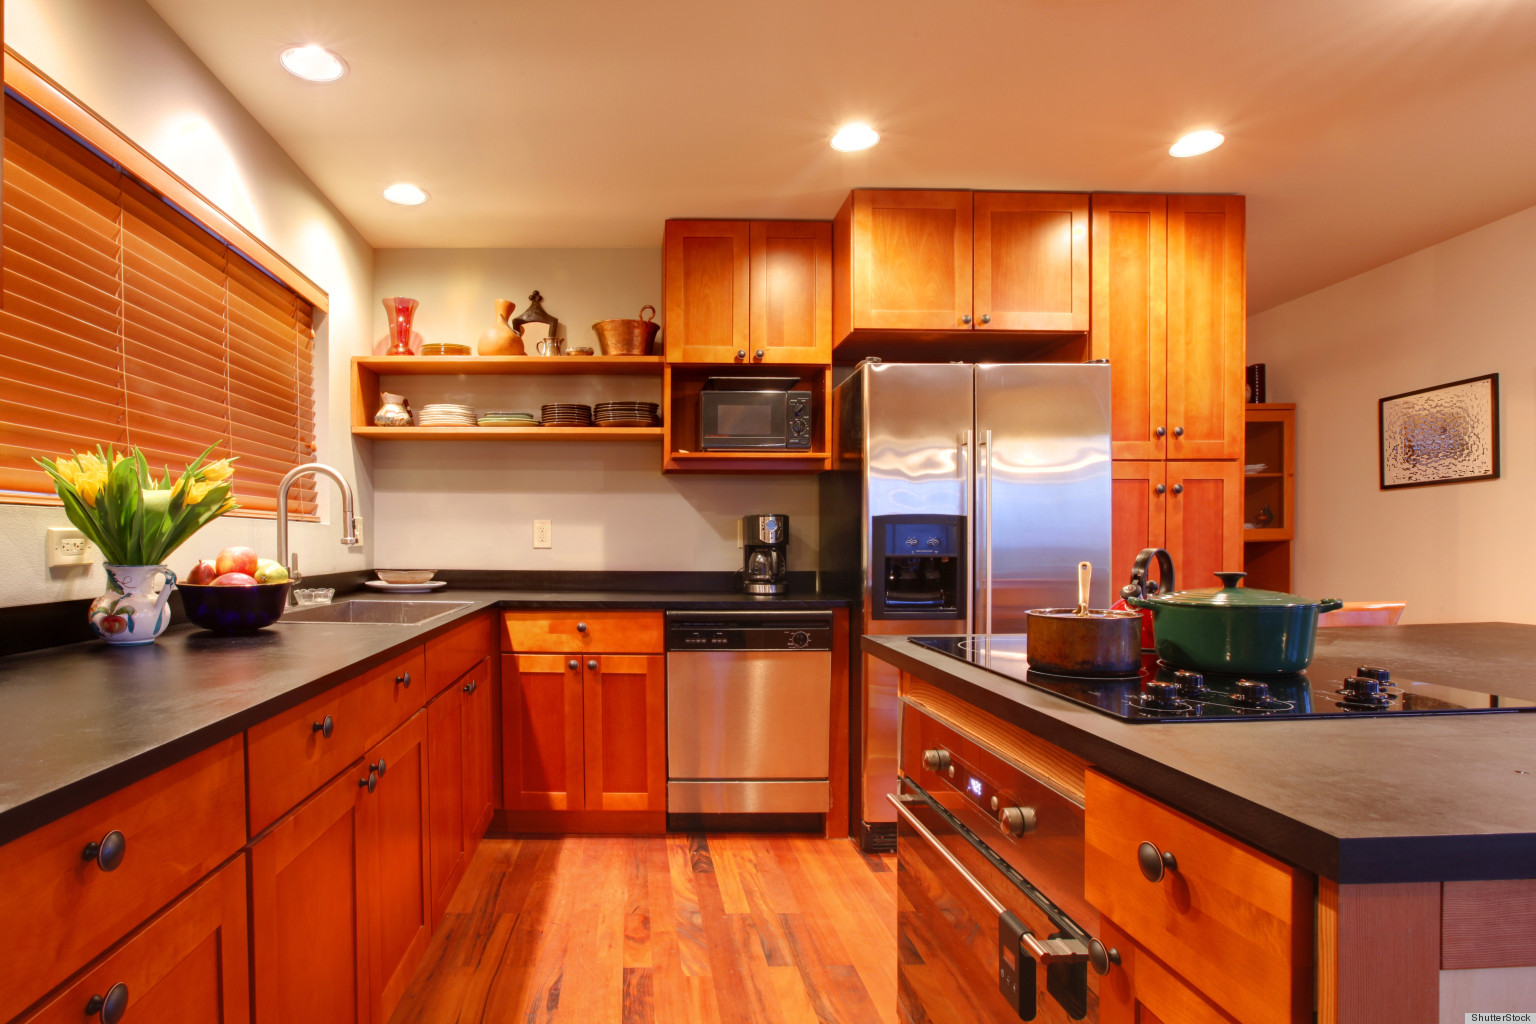 Clean your kitchen ceiling to remove cooking grime huffpost - Cleaning inside kitchen cabinets ...